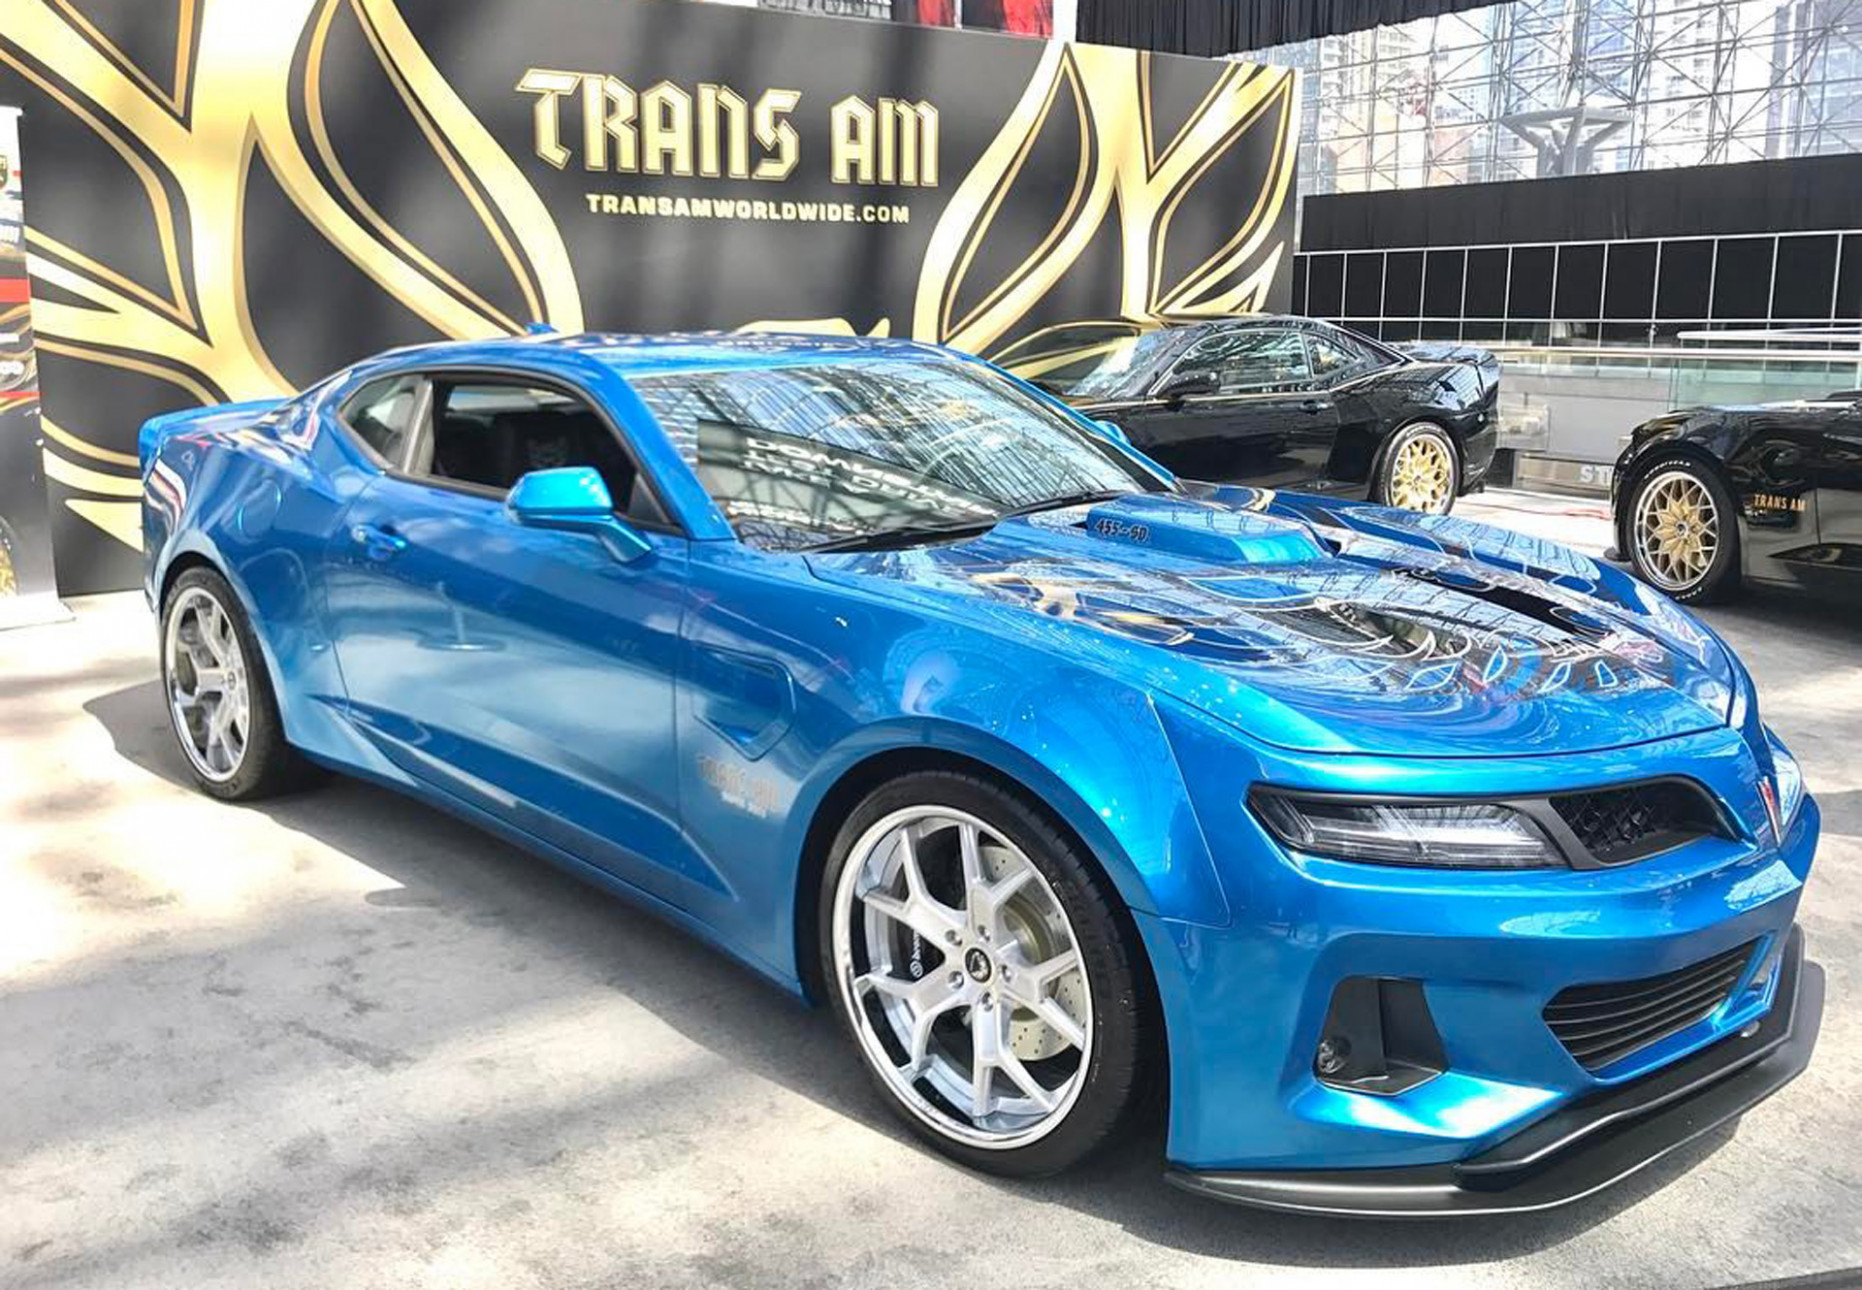 6th-gen Camaro Trans Am conversion comes packing 6,6 horsepower | 2020 Dodge Trans Am